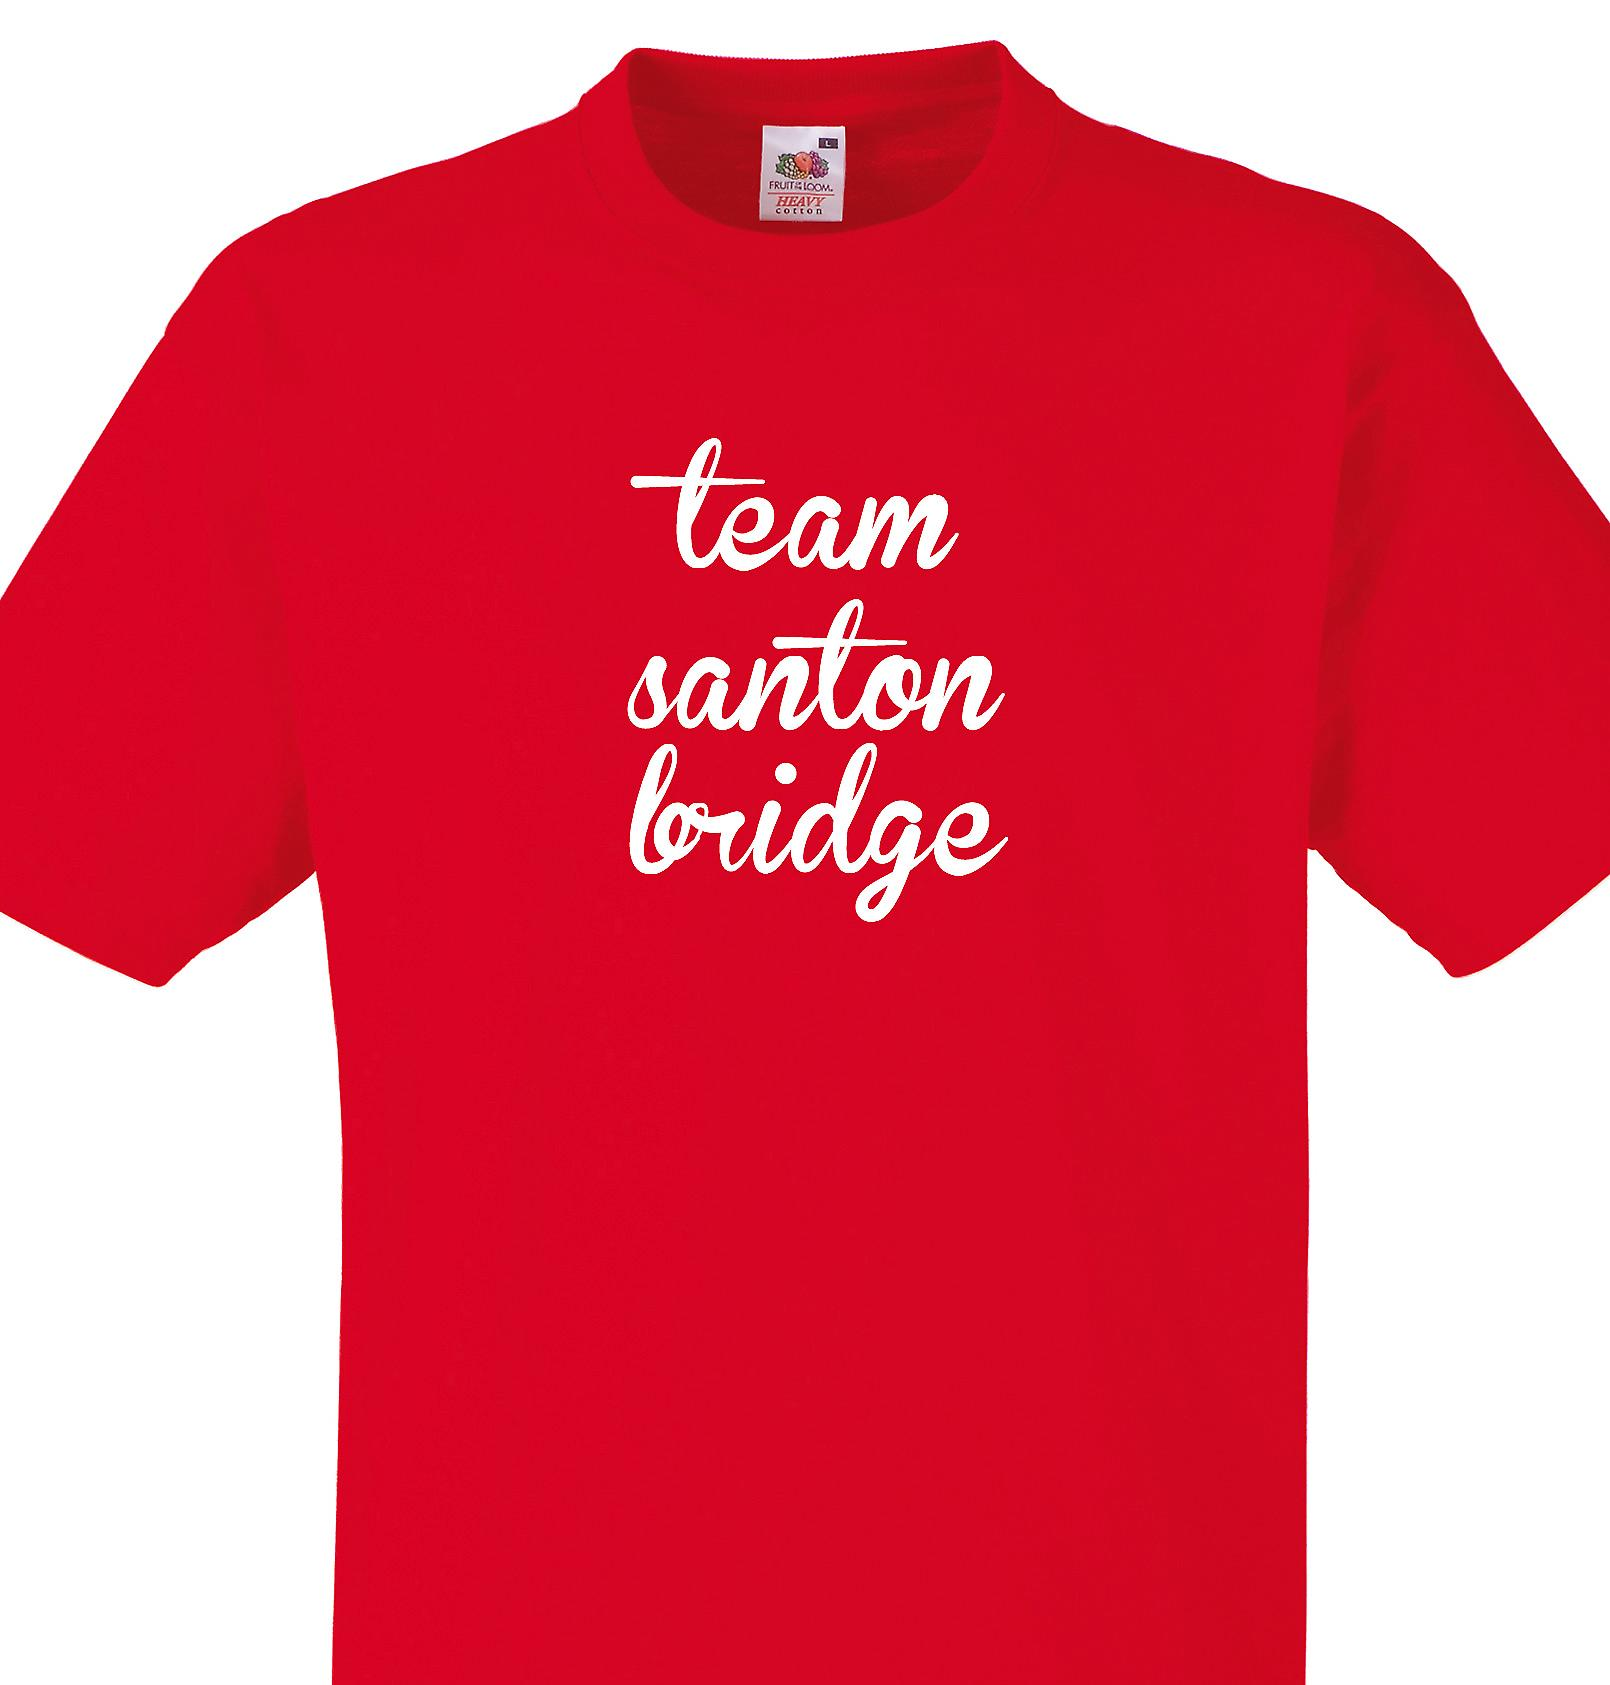 Team Santon bridge Red T shirt